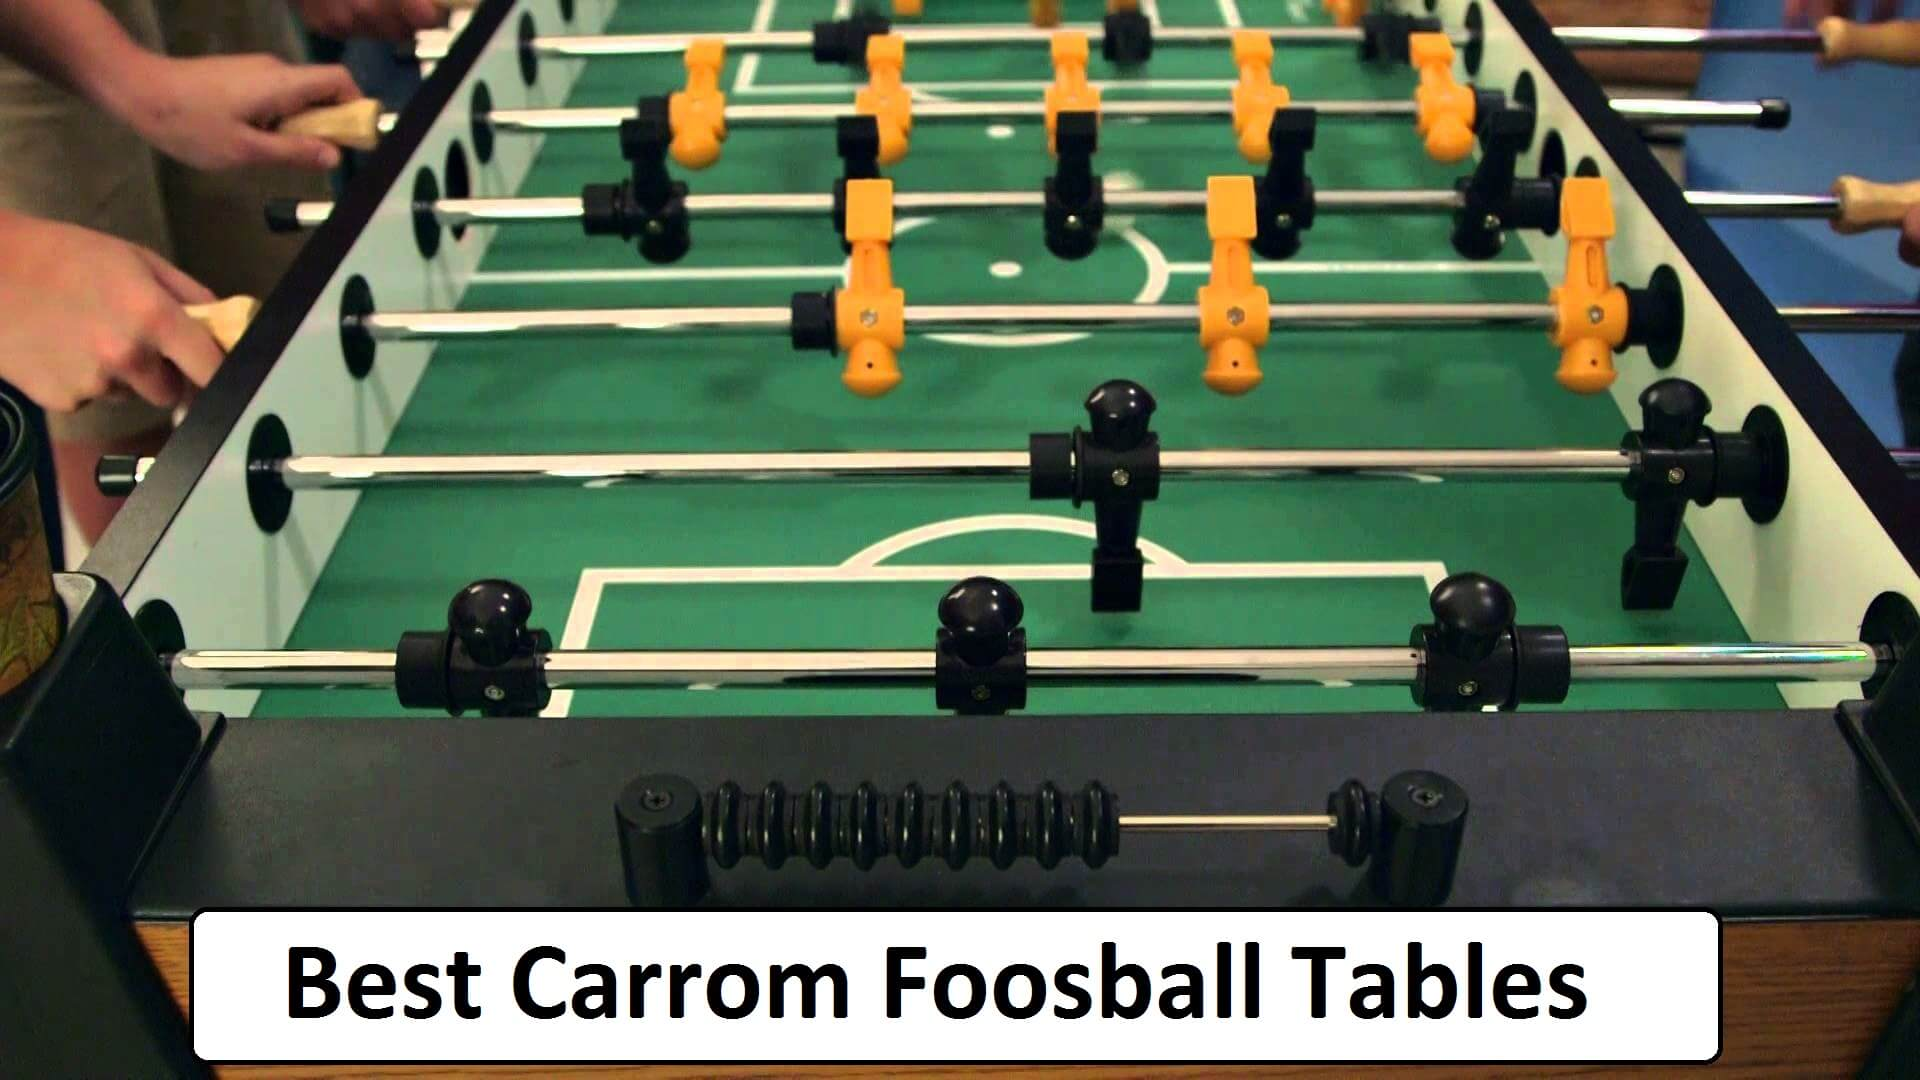 Best Carrom Foosball Table to have a good time